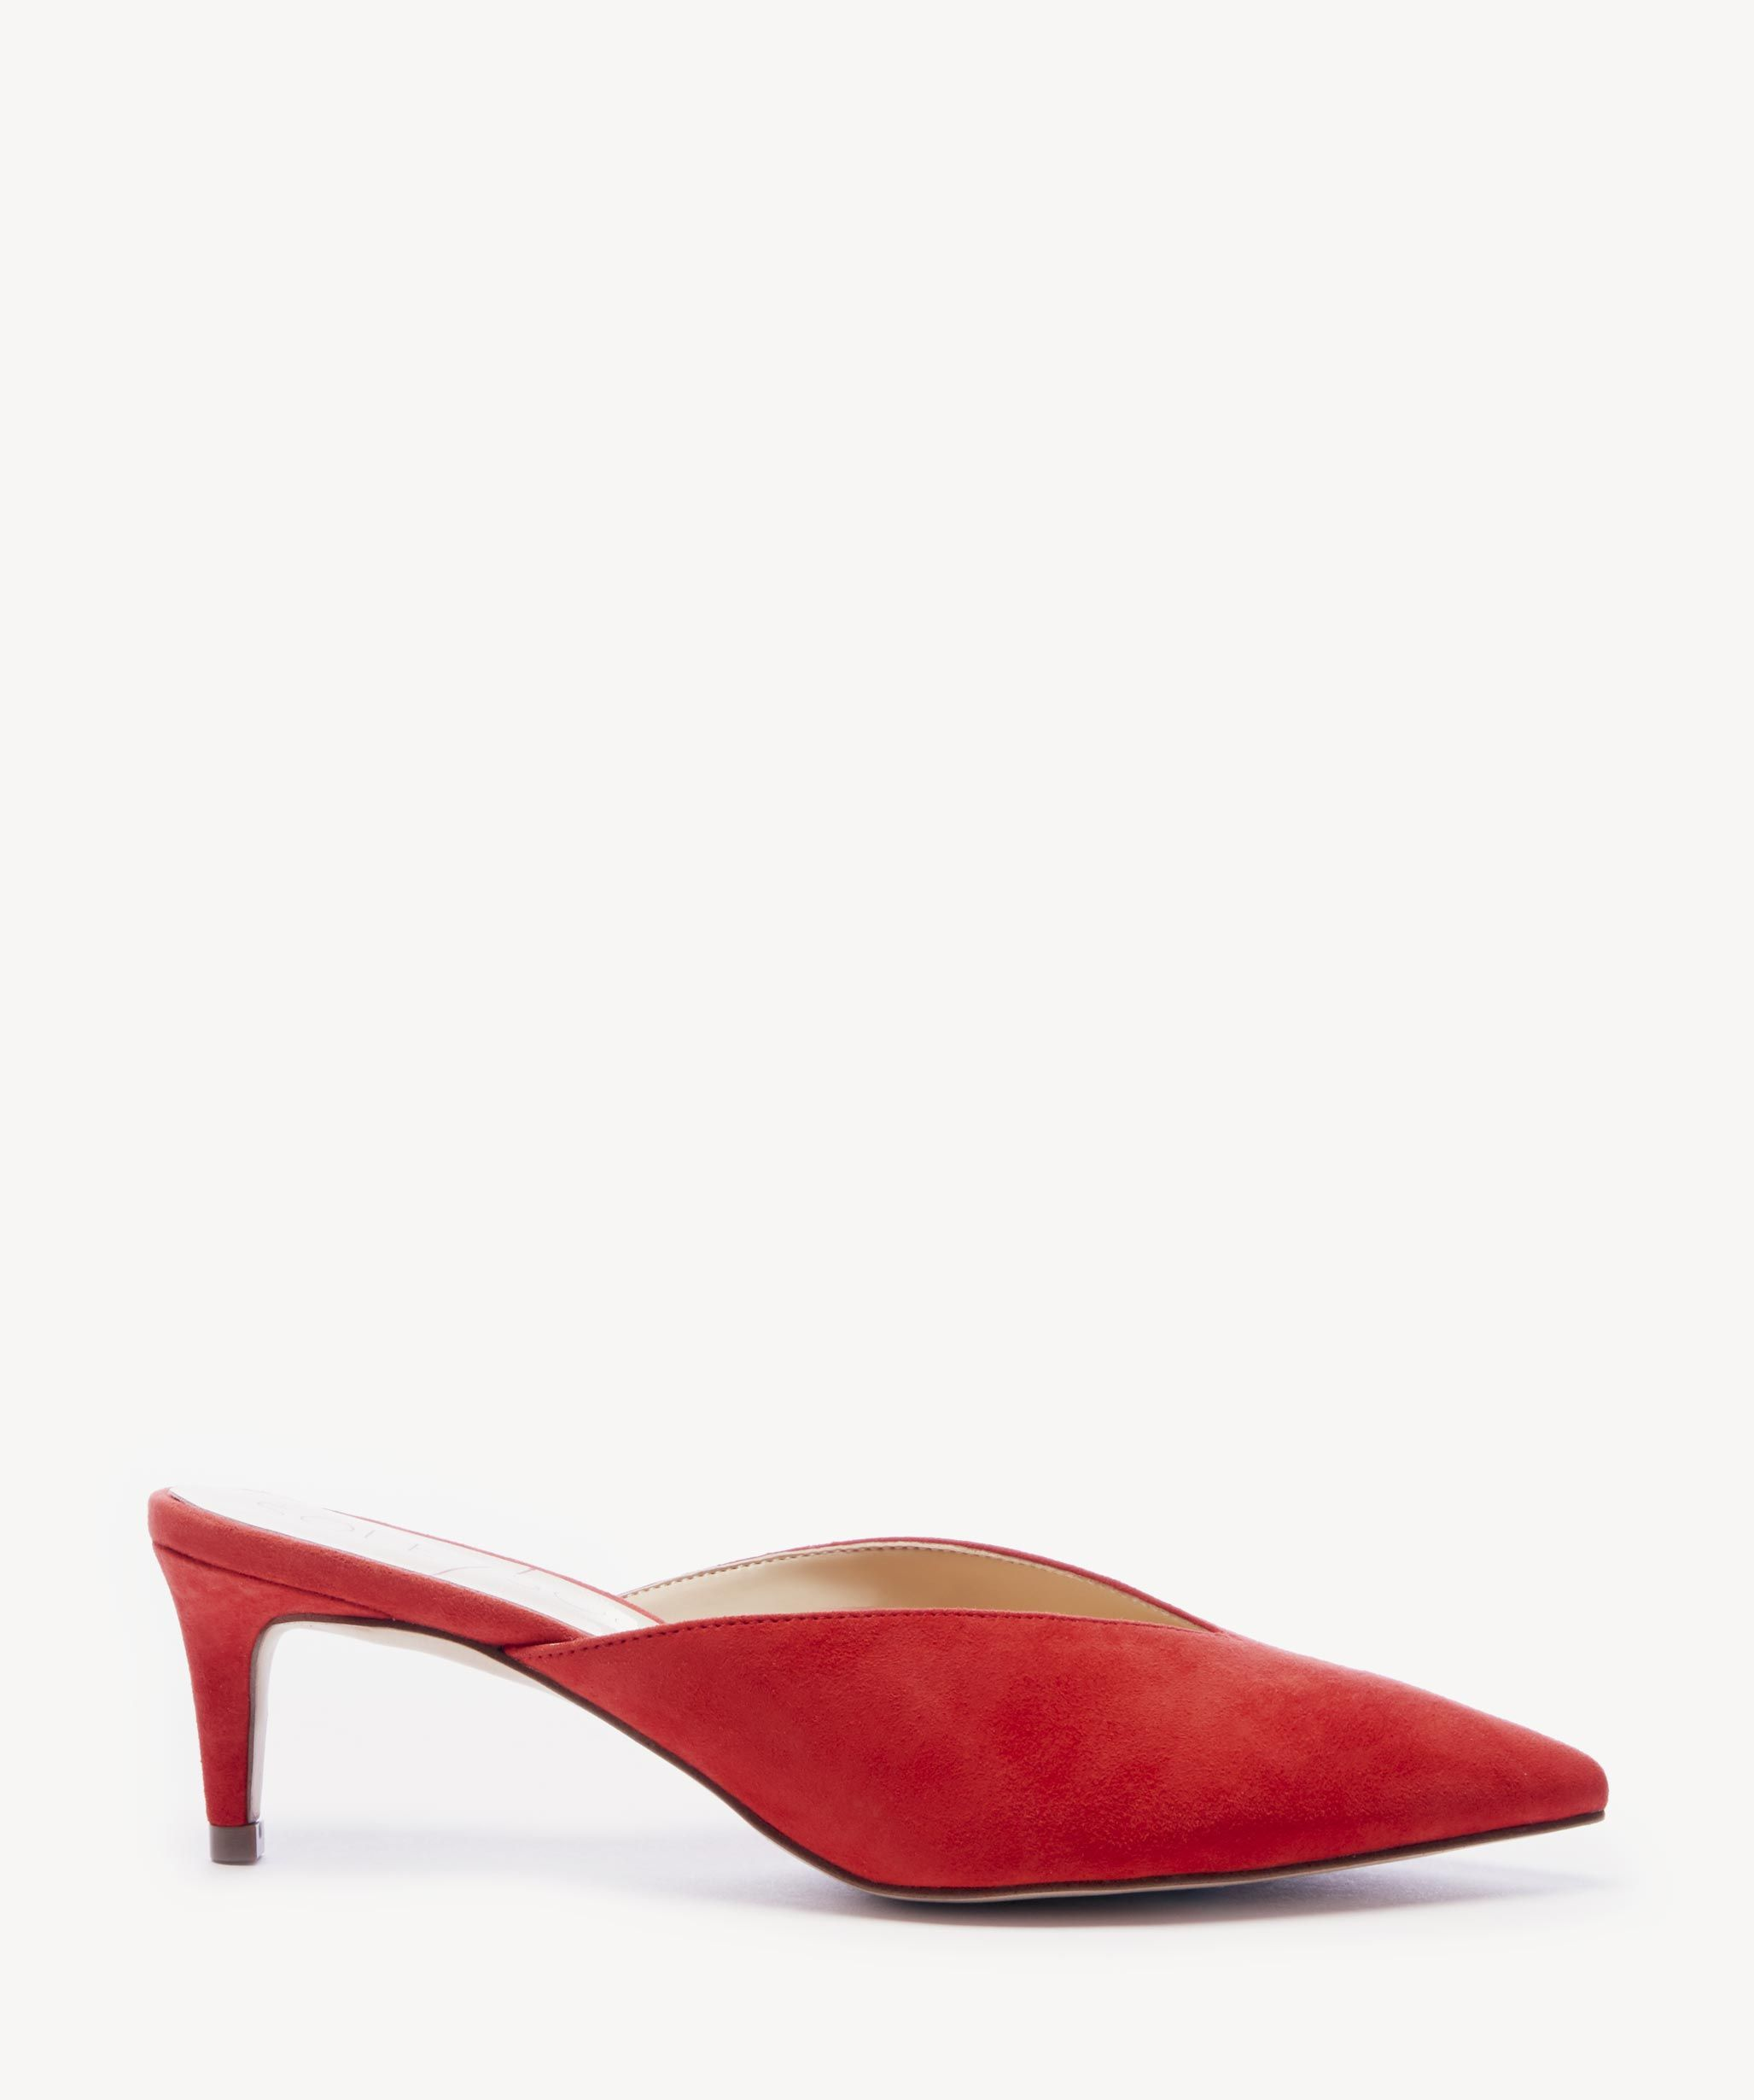 735f0cbfc106 Sole Society Maleah Mules Pumps Deep Coral